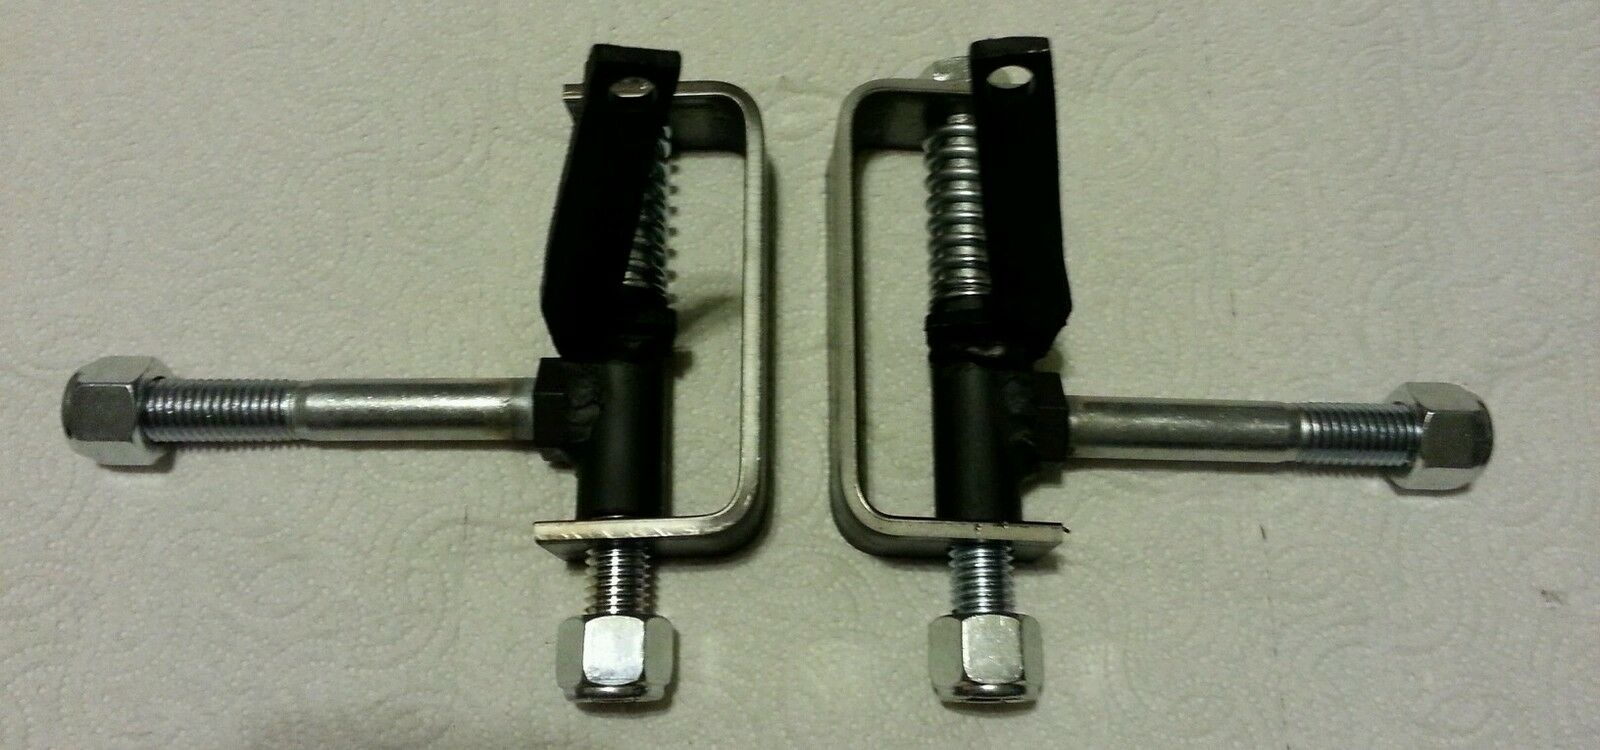 Go Kart Spindles : Set of extended brackets with spindles and springs for go